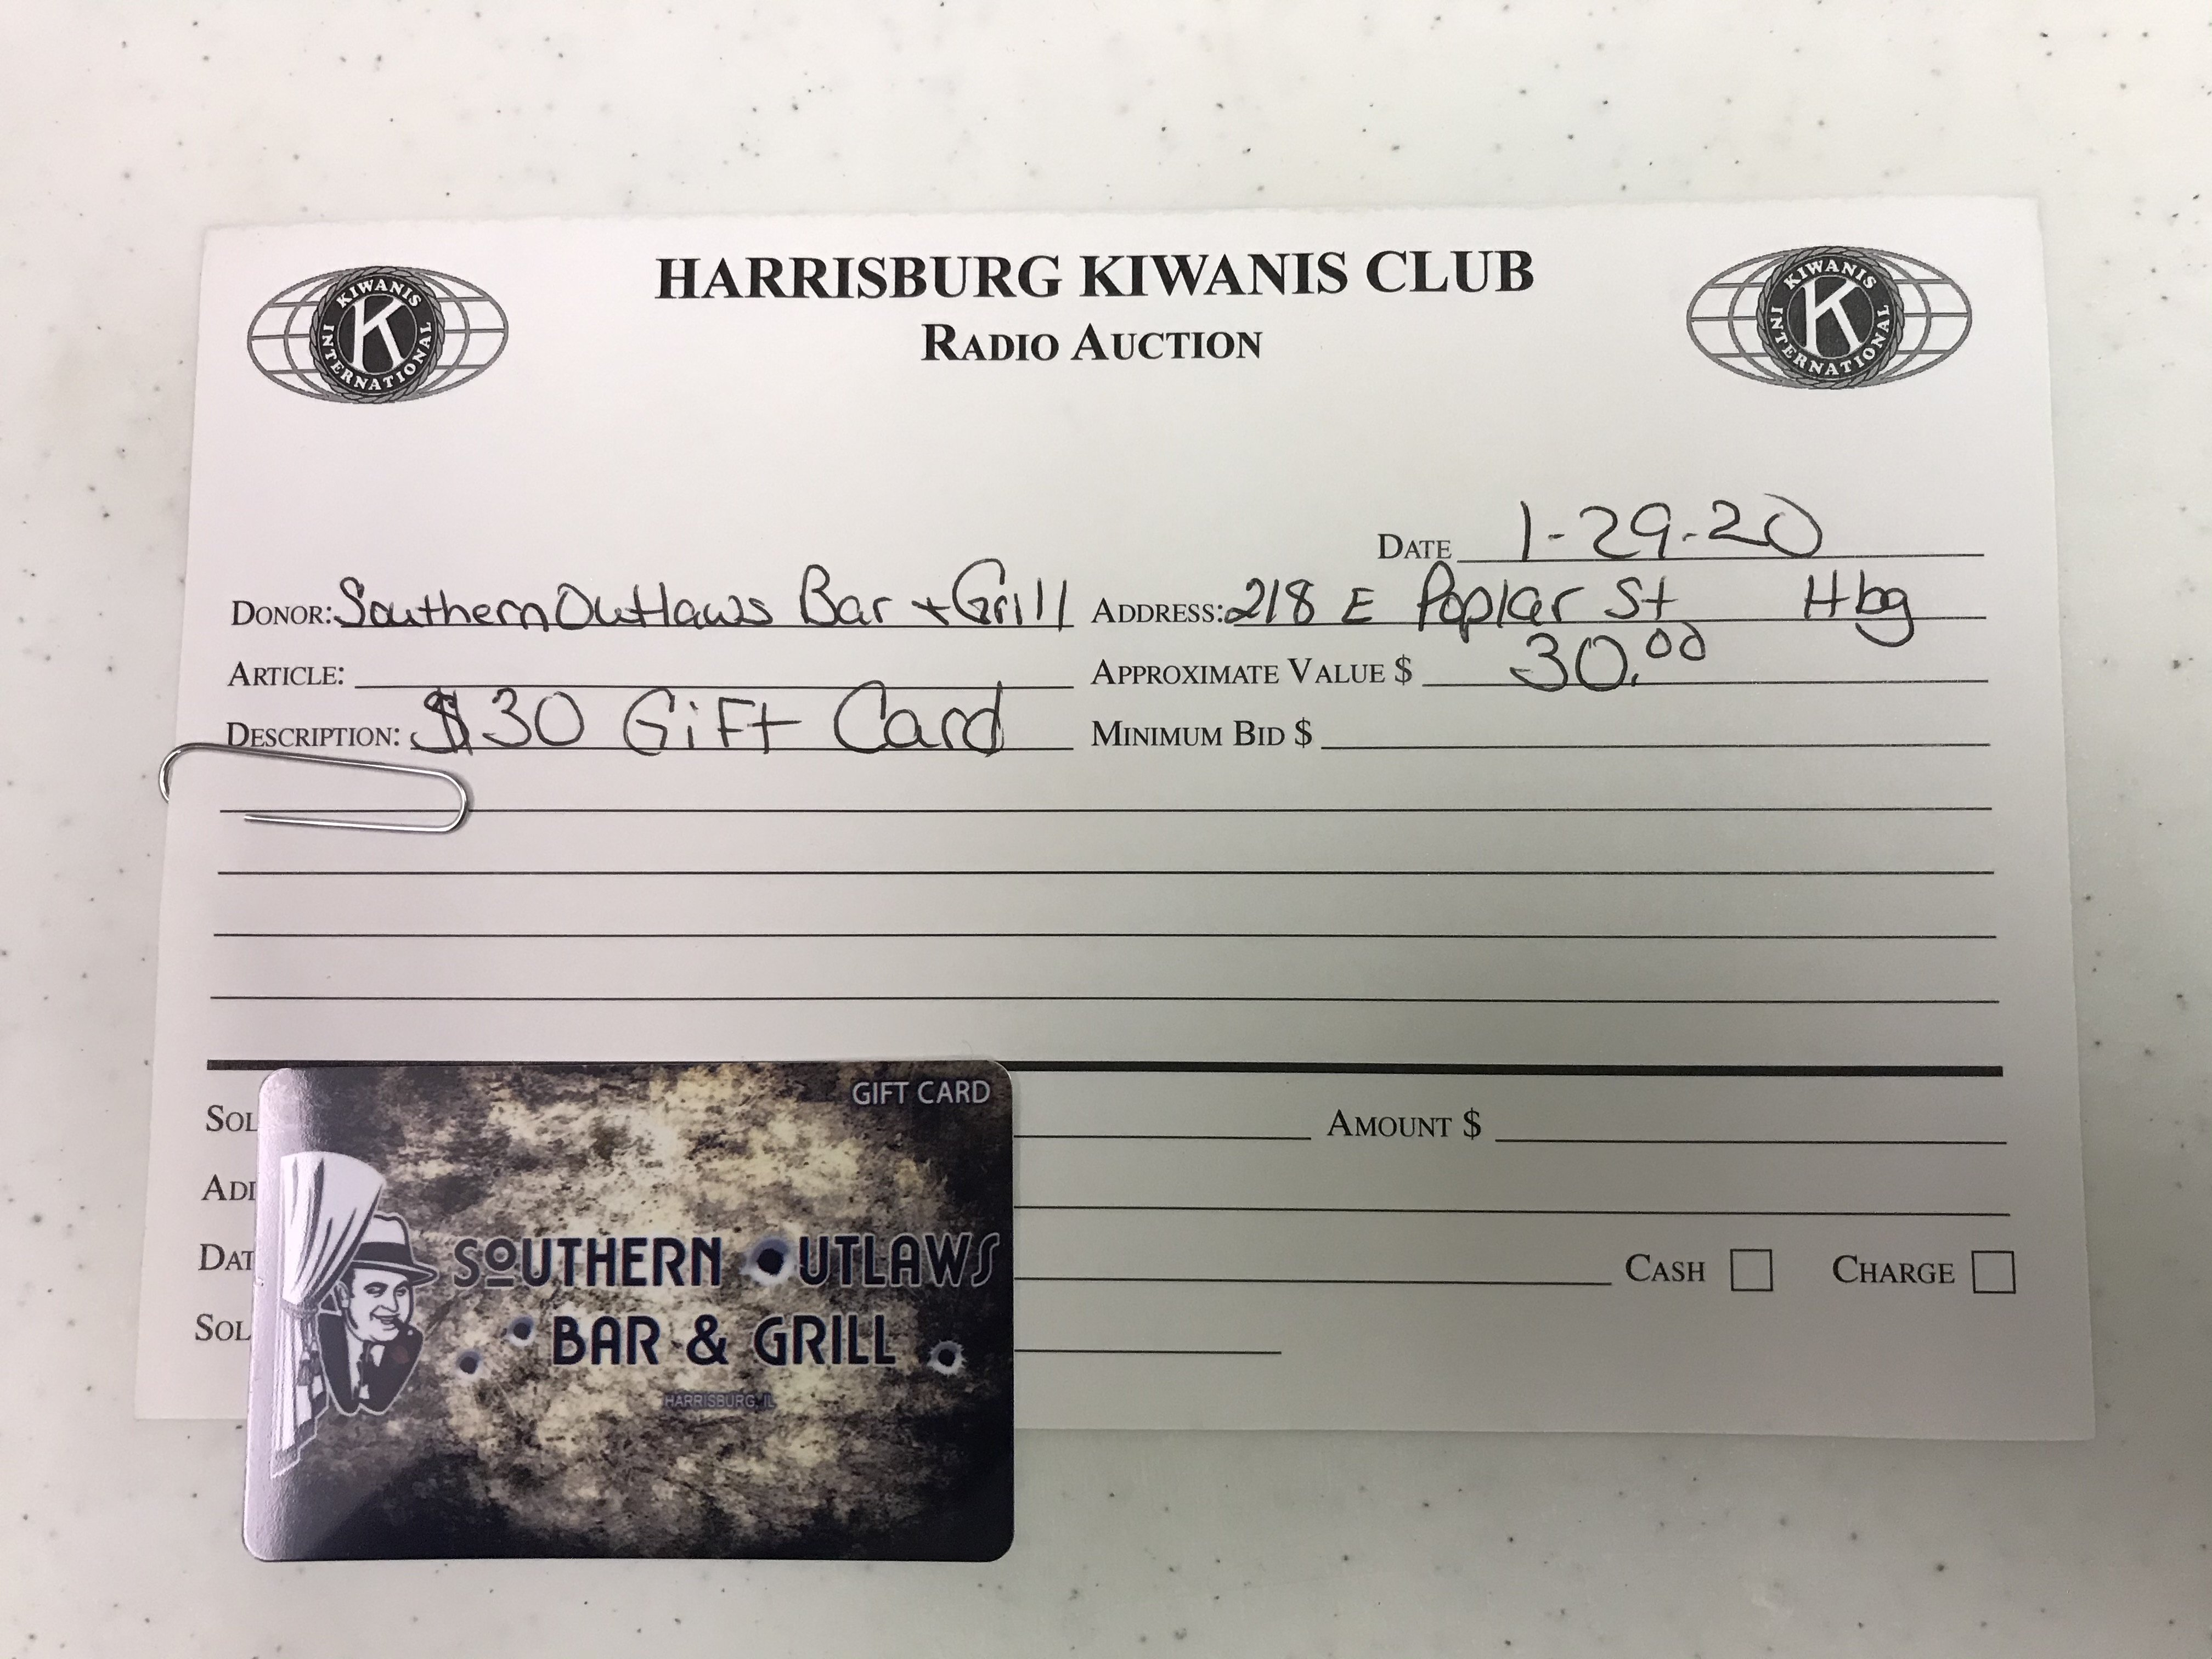 Item 120 - Southern Outlaws Bar & Grill $30 Gift Card